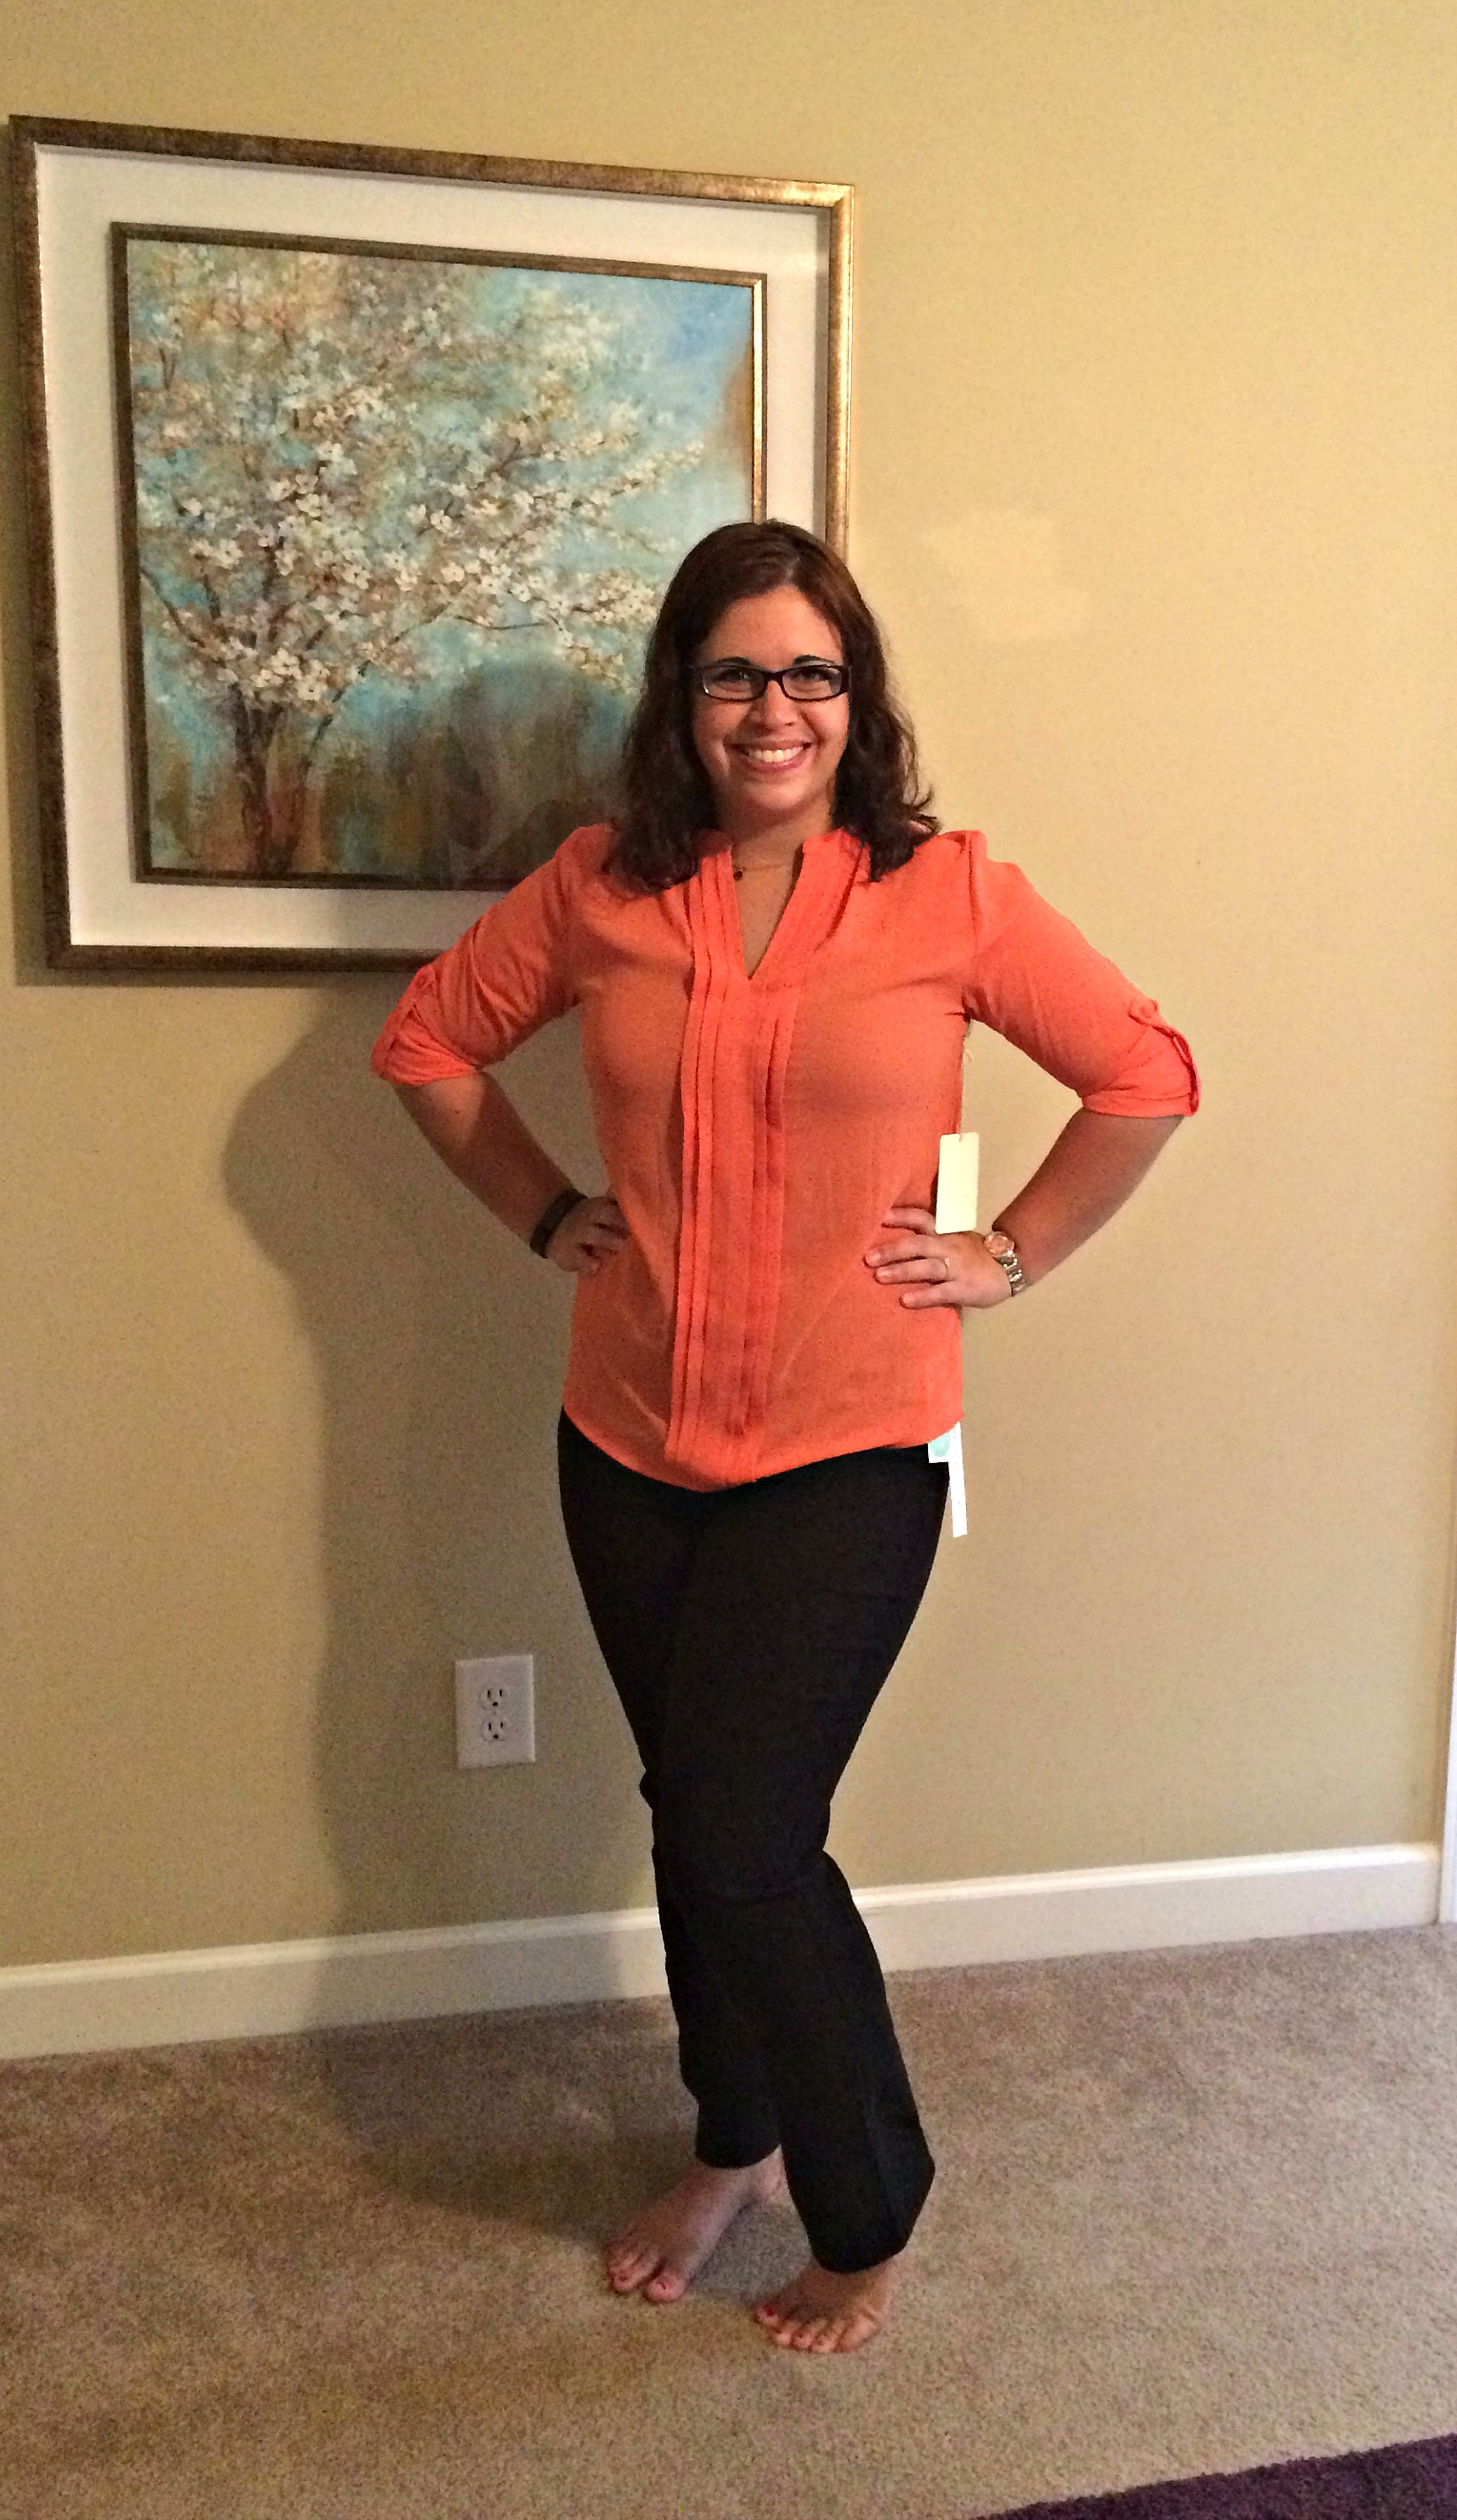 I got these great high-waisted pants and beautiful creamsicle blouse for work! Both keepers!